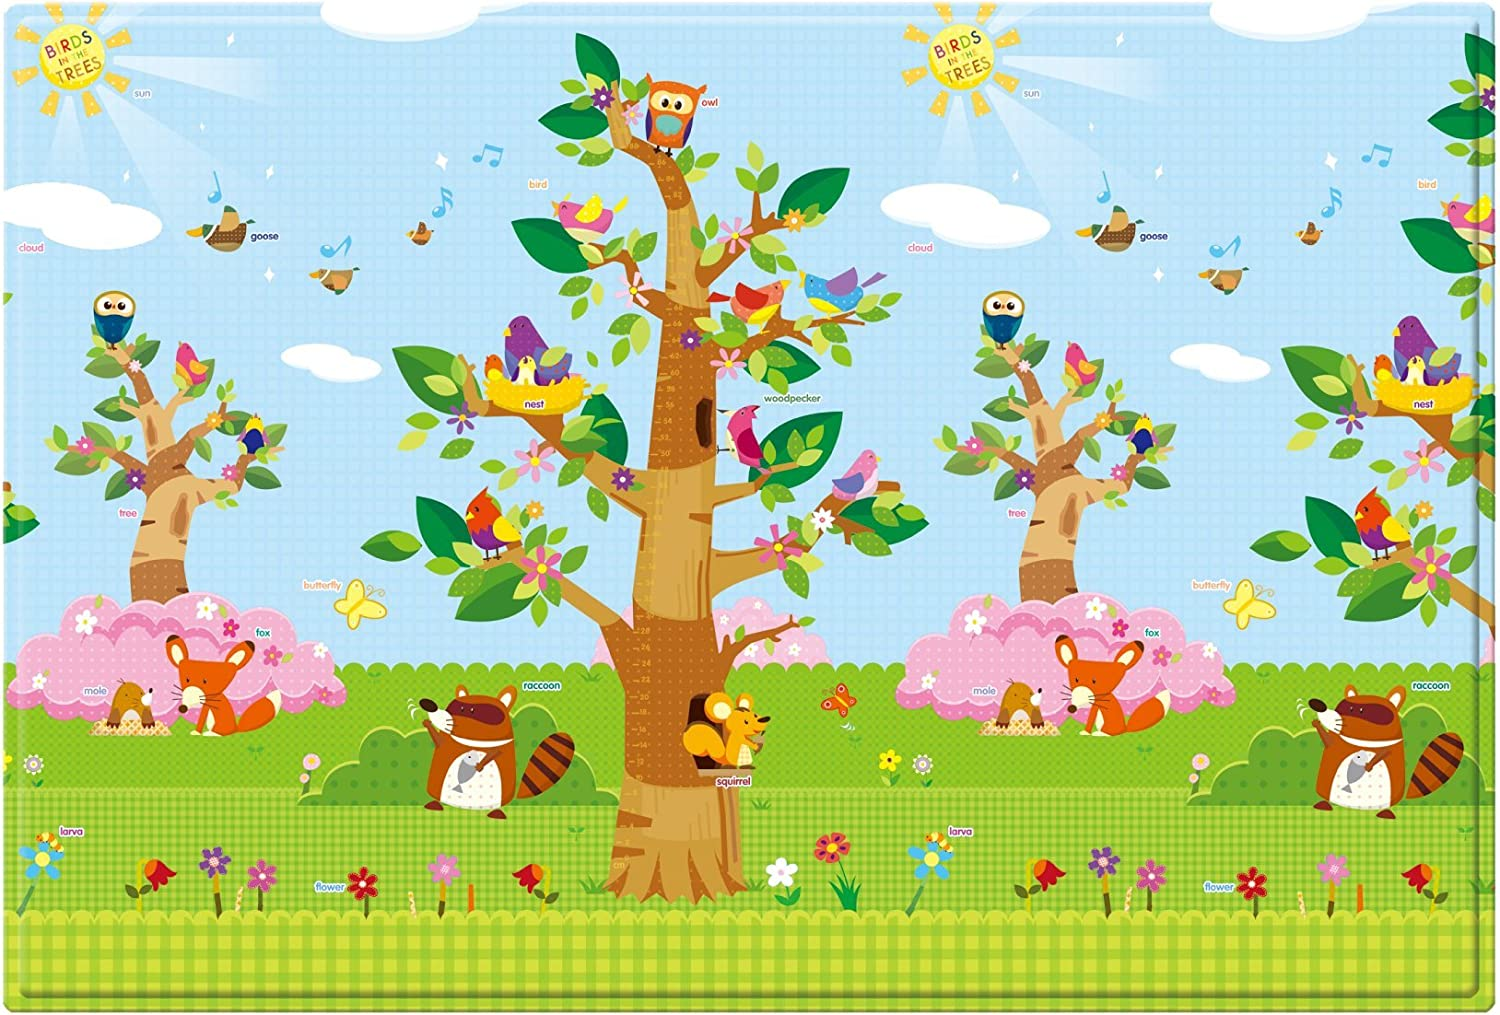 Baby Care Double sided soft Playmat/Kids Toddler Children Play Mat/Crawling Mat/Protecting Play Mats - Birds in the Trees - Large I & S Co. Ltd.